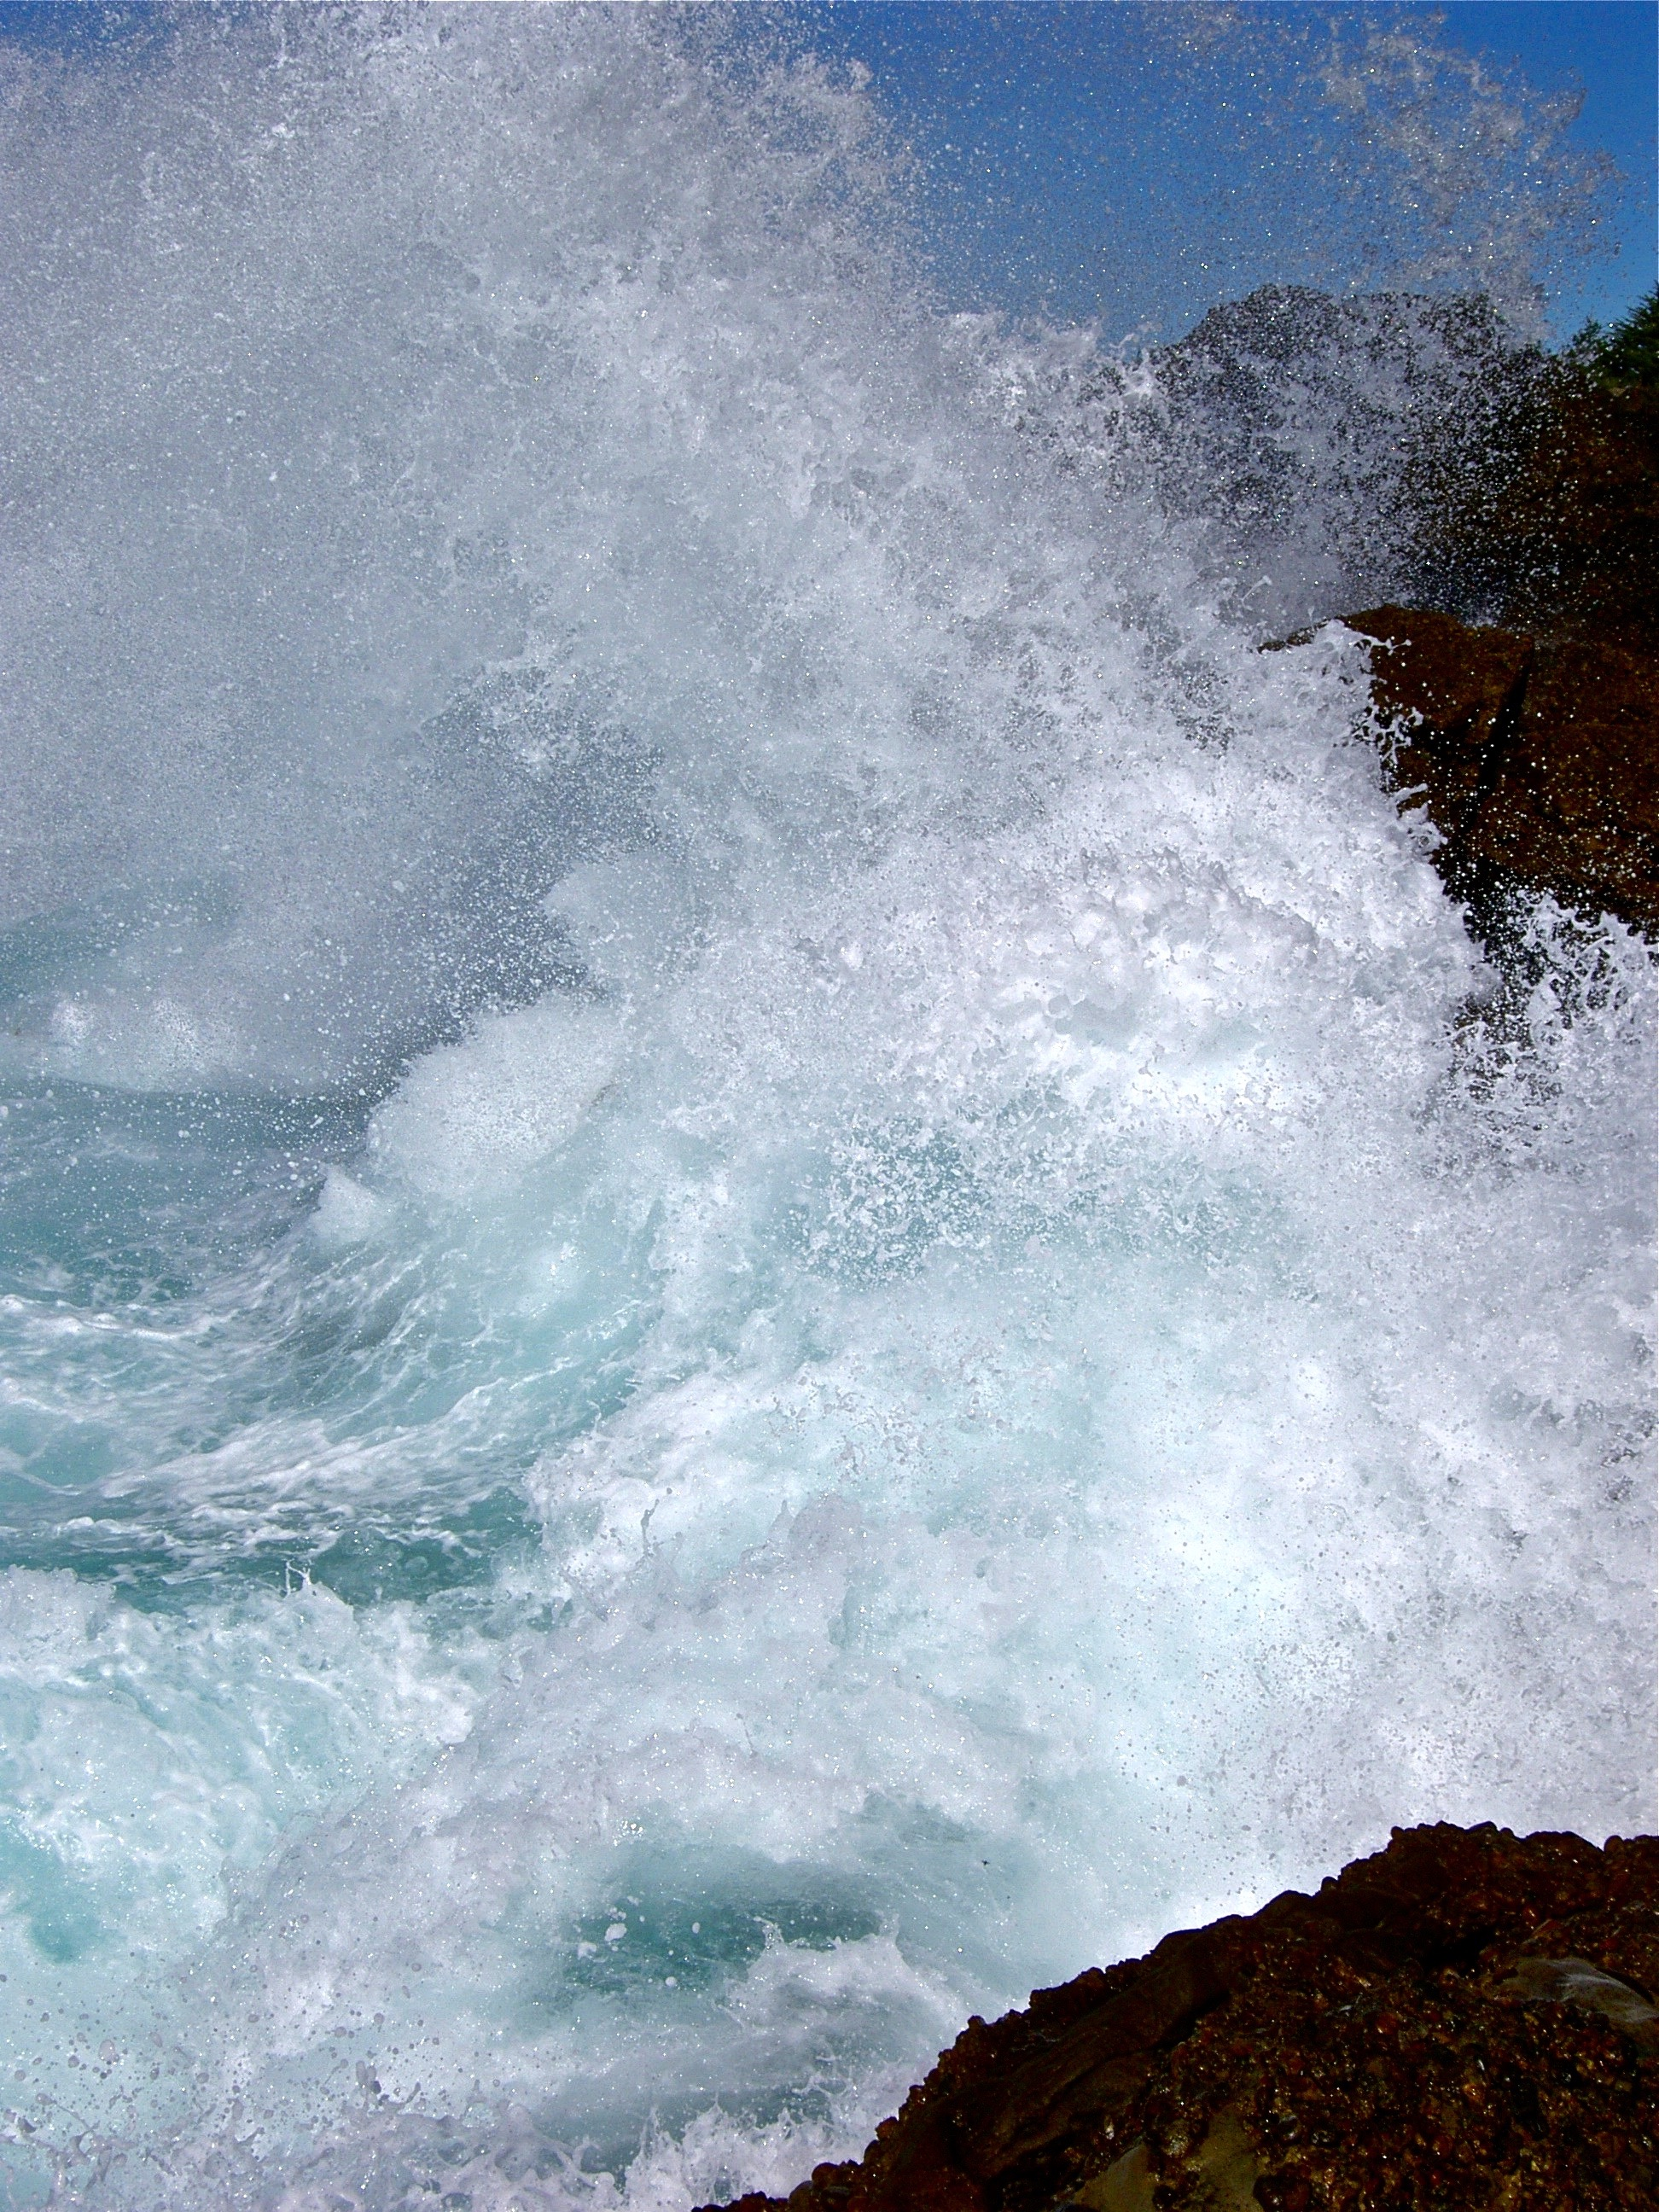 The Pacific Ocean unleashes its fury at The Slot, which pits overeager photographers against lethal plumes of seawater.